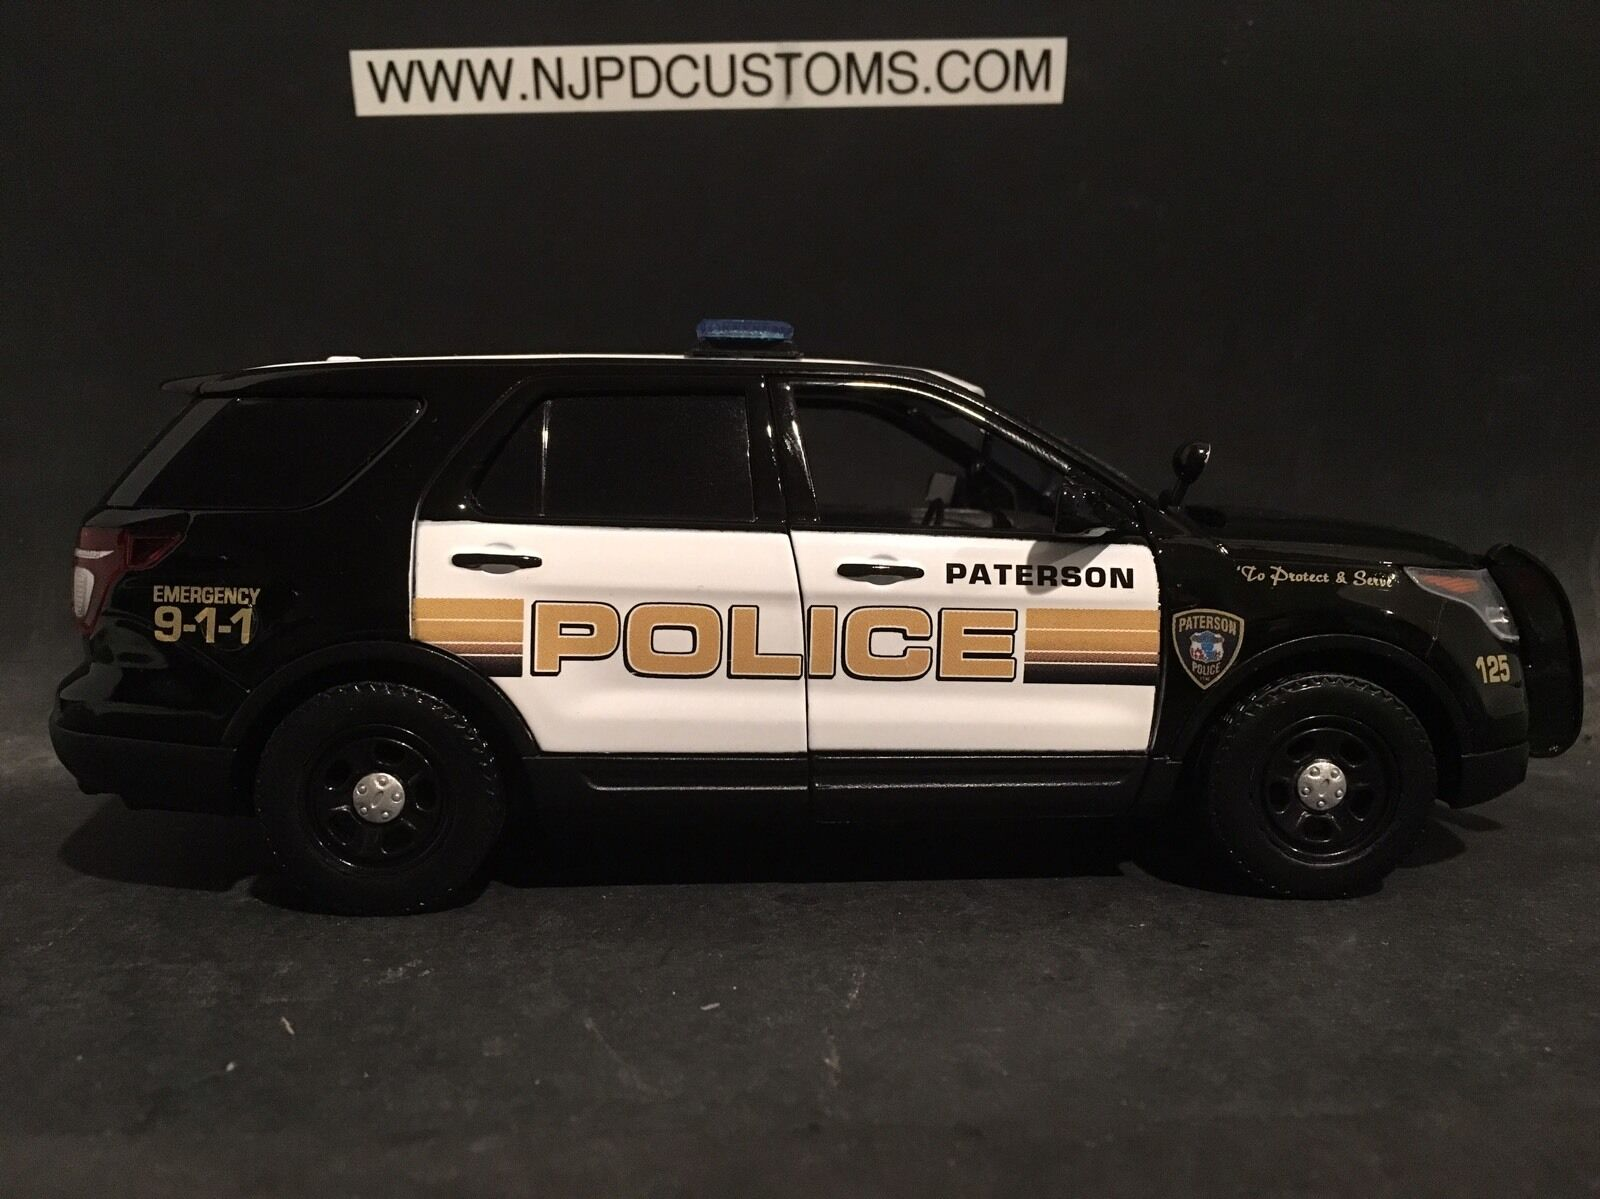 Paterson Police NJ 1 24 Scale Ford Explorer SUV Replica Police Car